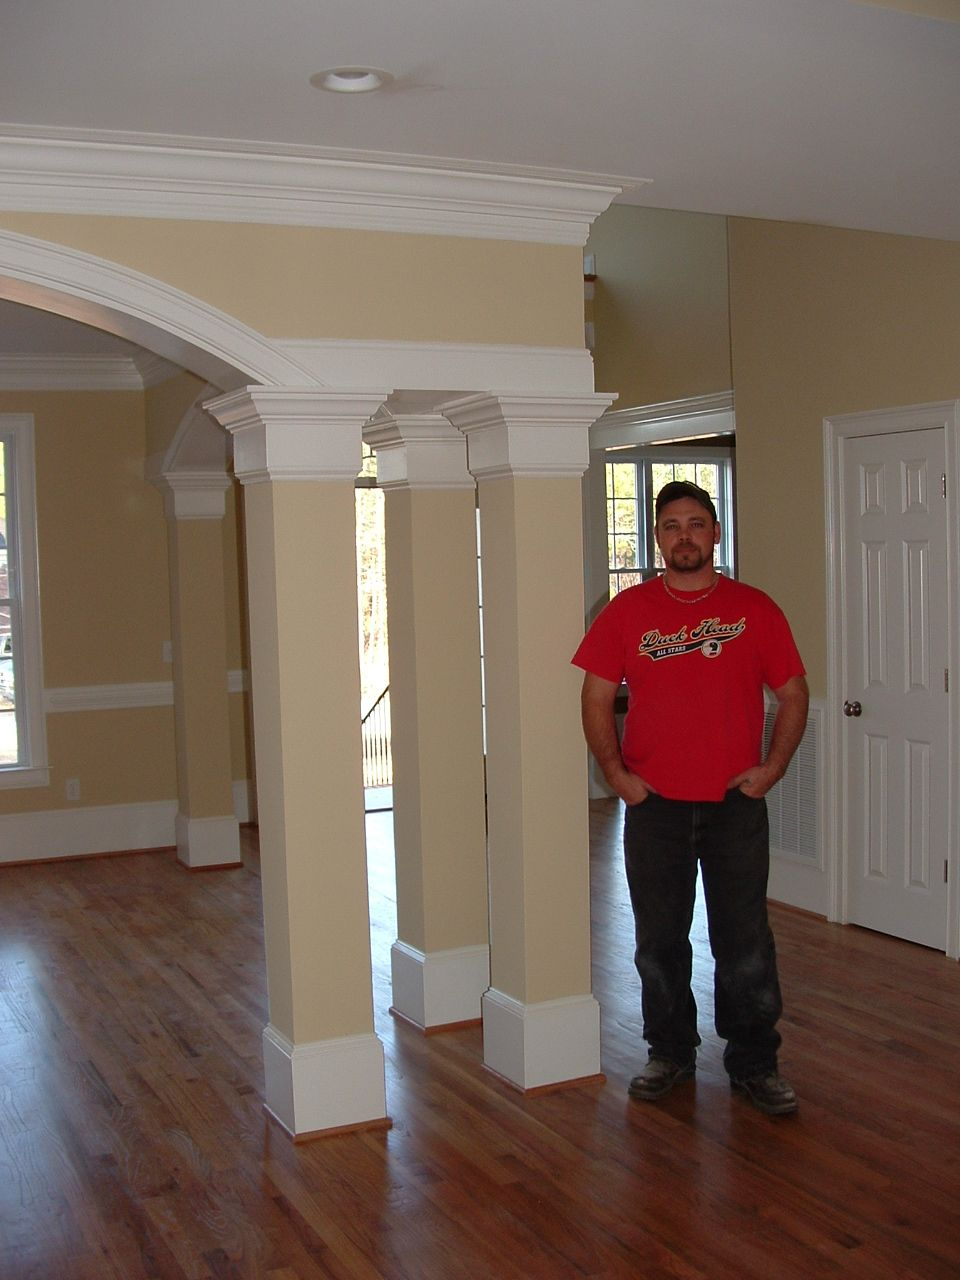 1000  images about Crown molding ideas on Pinterest   Doors  Window moulding and Arches. 1000  images about Crown molding ideas on Pinterest   Doors